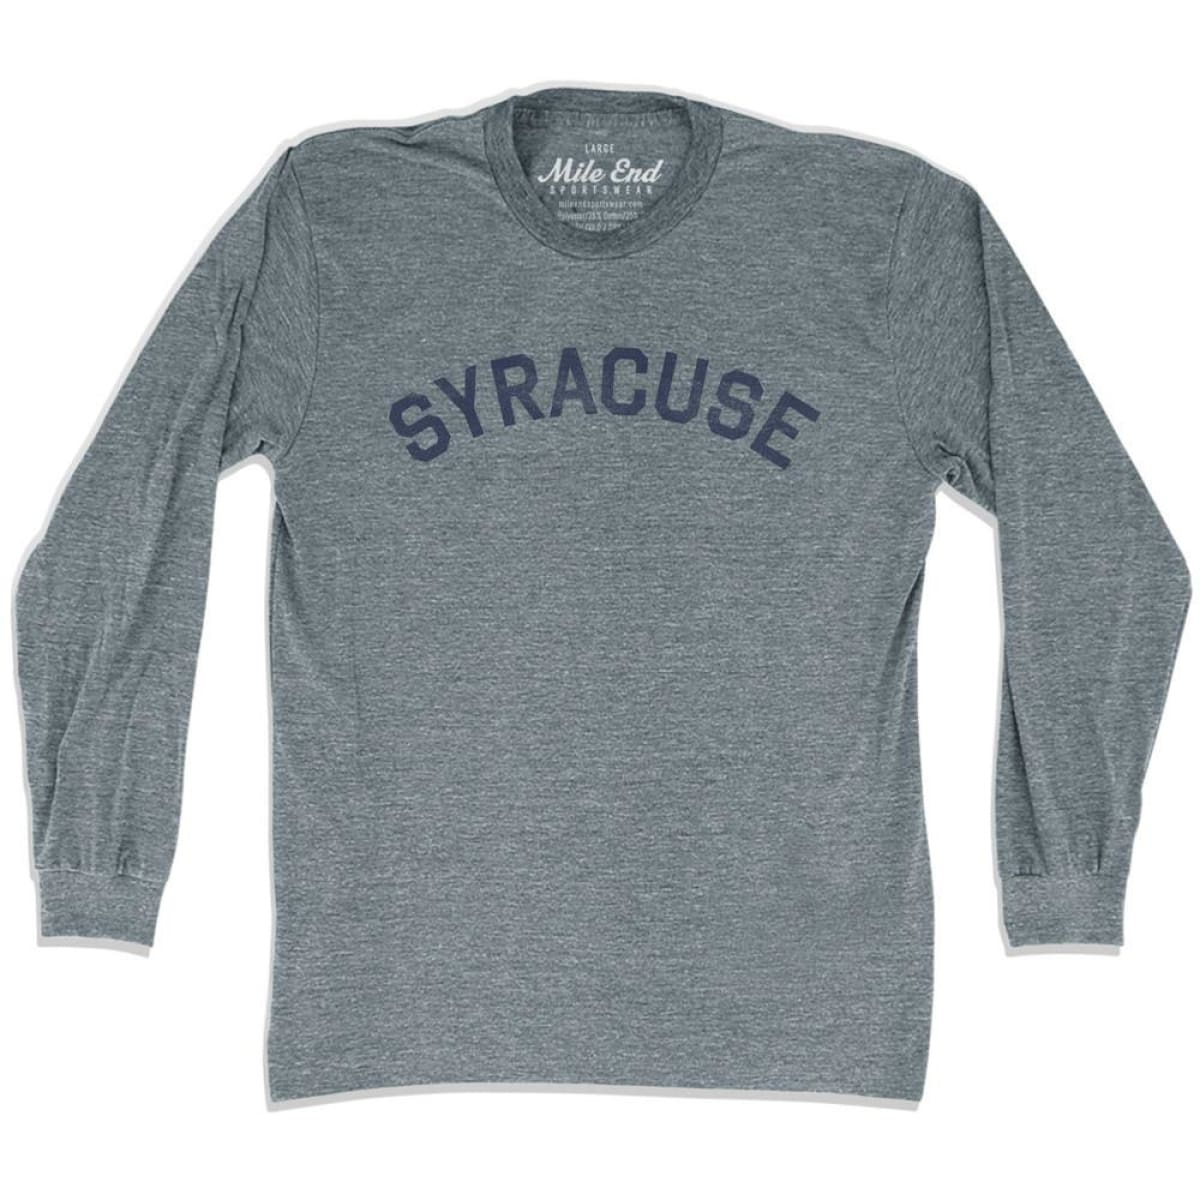 Syracuse City Vintage Long Sleeve T-Shirt - Athletic Grey / Adult X-Small - Mile End City